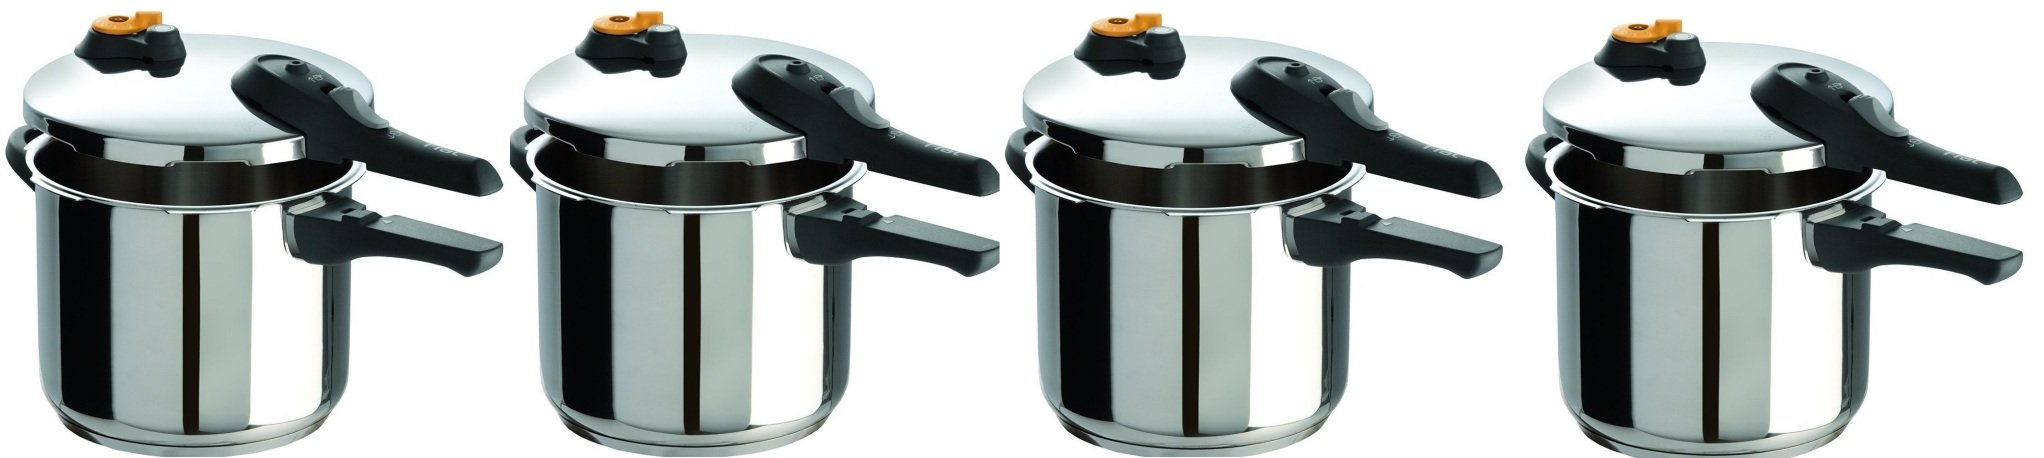 T-fal P25107 Stainless Steel Dishwasher Safe PTFE PFOA and Cadmium Free 10 / 15-PSI Pressure Cooker Cookware ZLCmoL, 6.3-Quart, Silver, 4 Pack